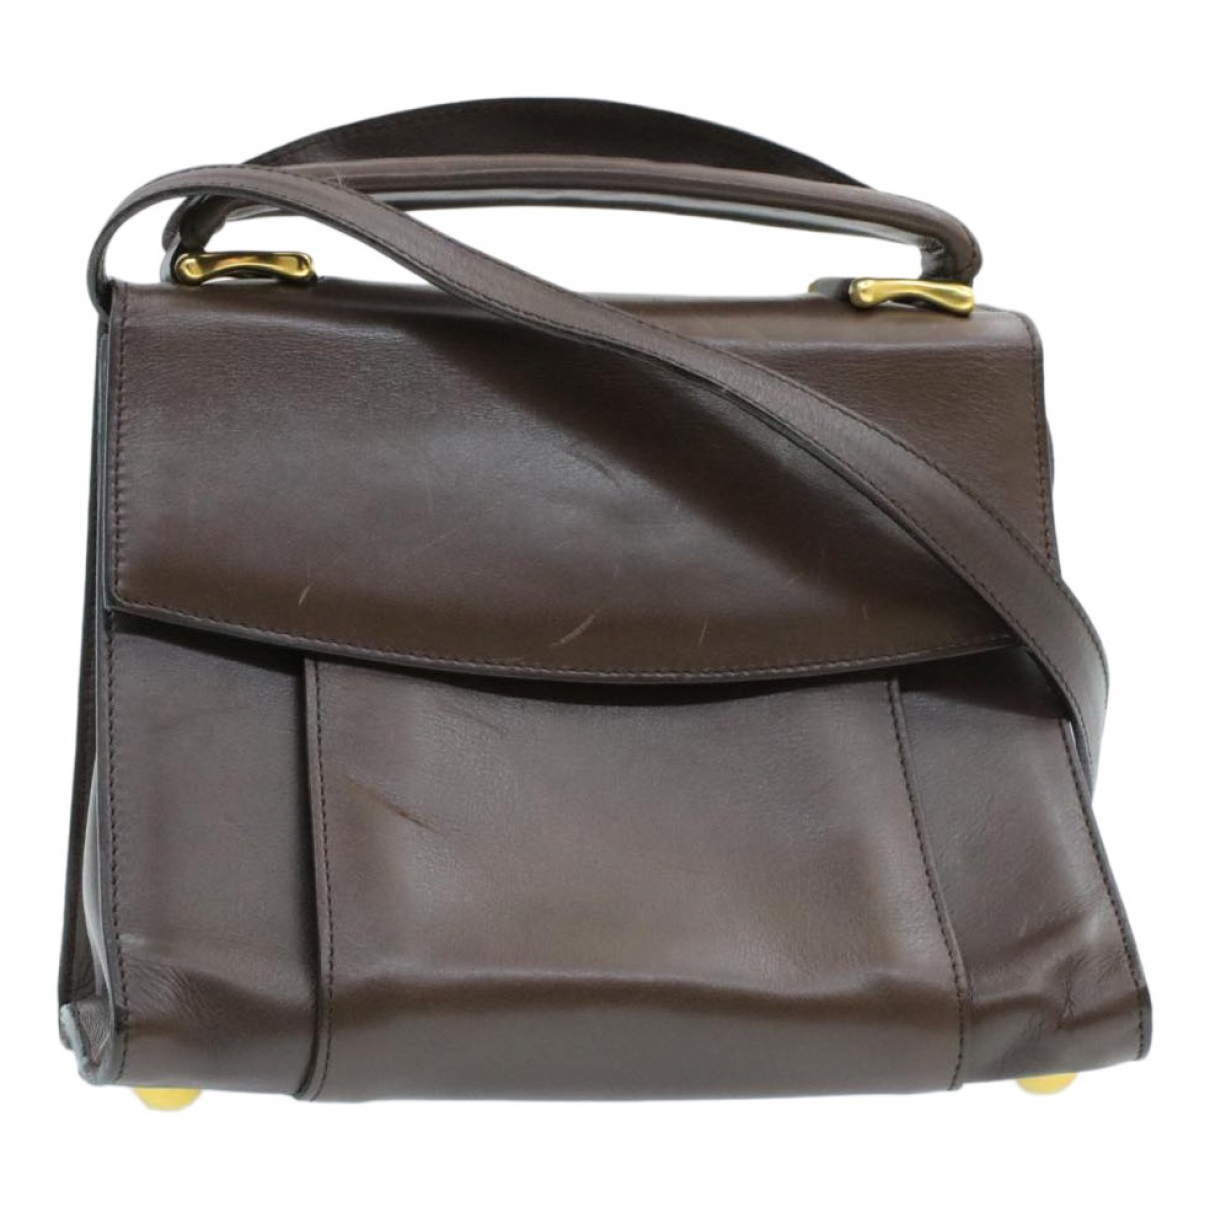 Celine N Brown Leather handbag for Women N